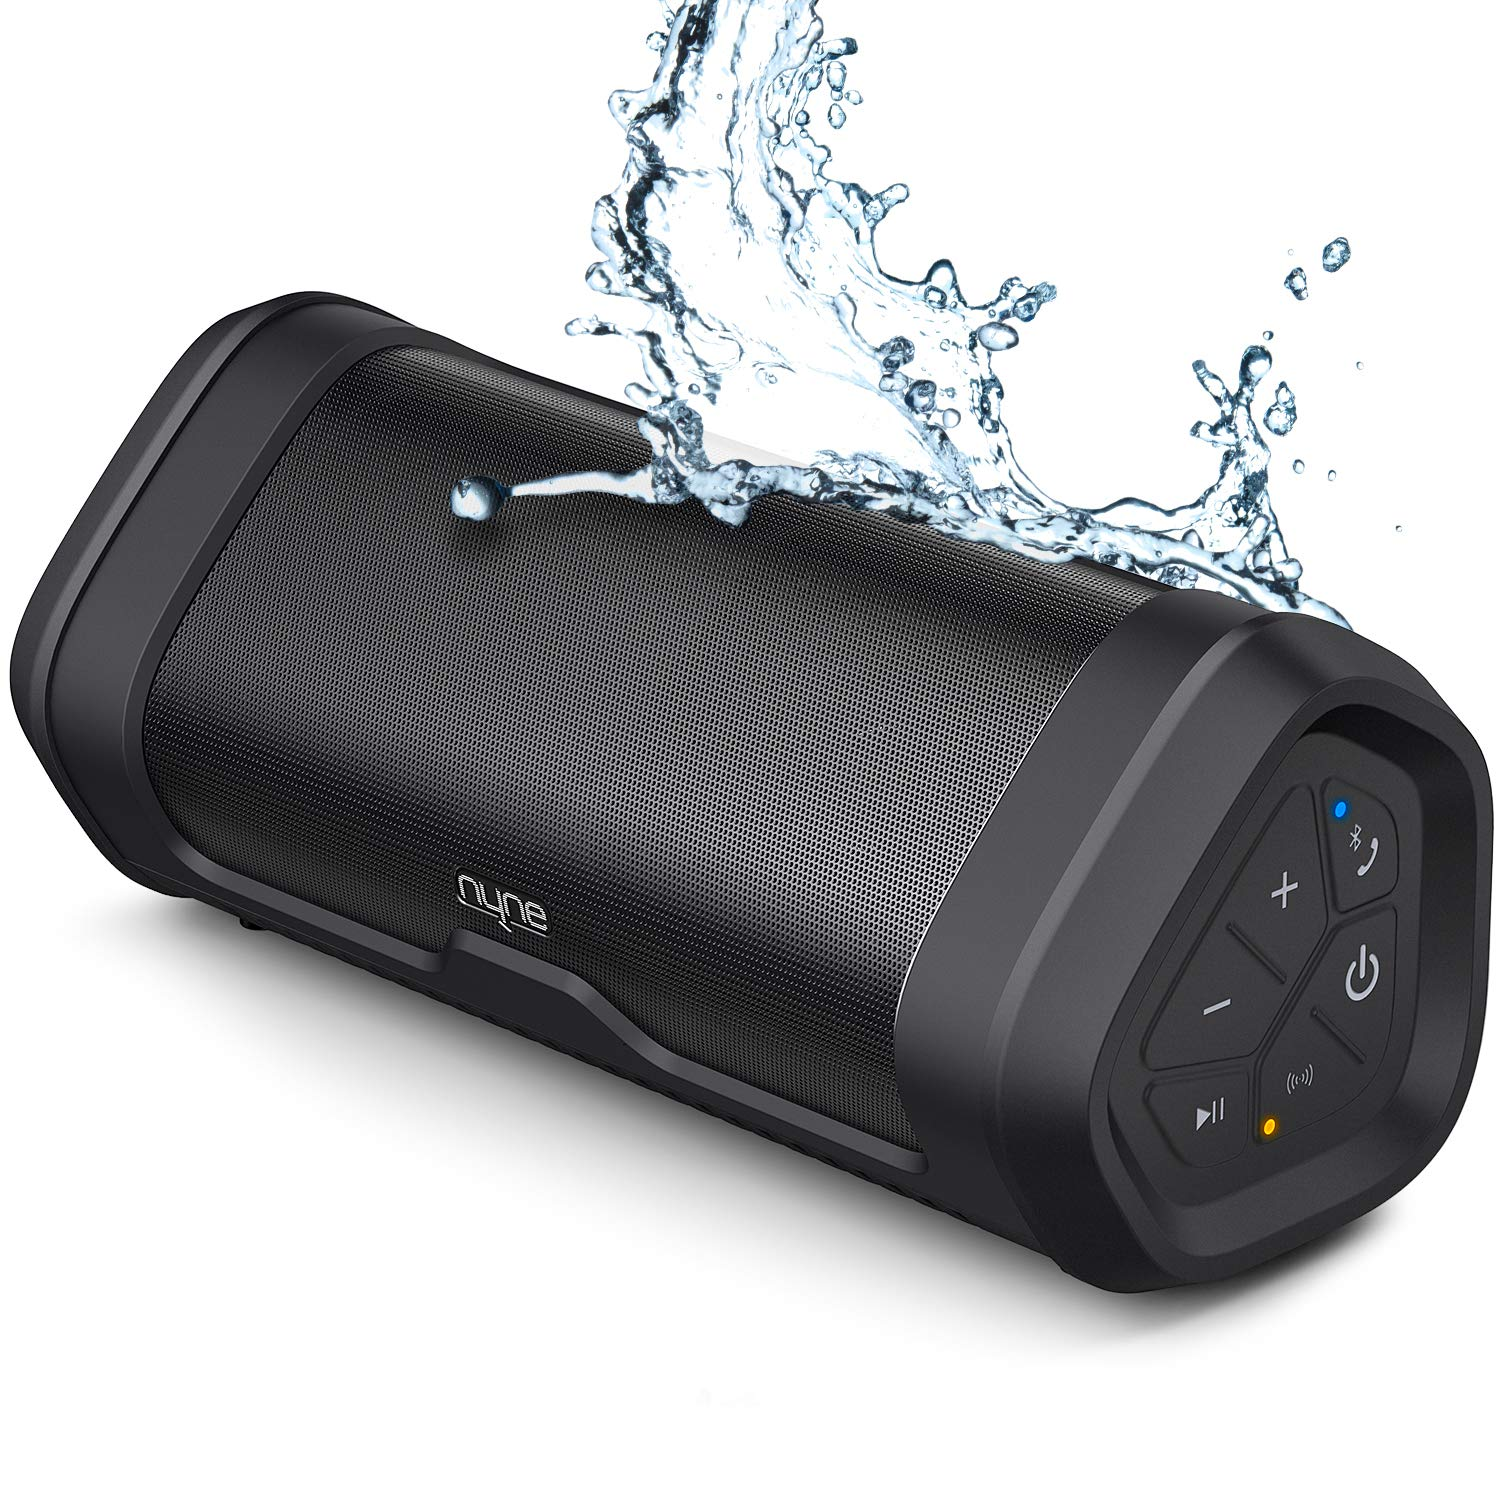 NYNE Boost Portable Waterproof Bluetooth Speakers with Premium Stereo Sound - IP67, 20 Hours Play-time, 100 ft Range, Built-in Power Bank and Mic, ...